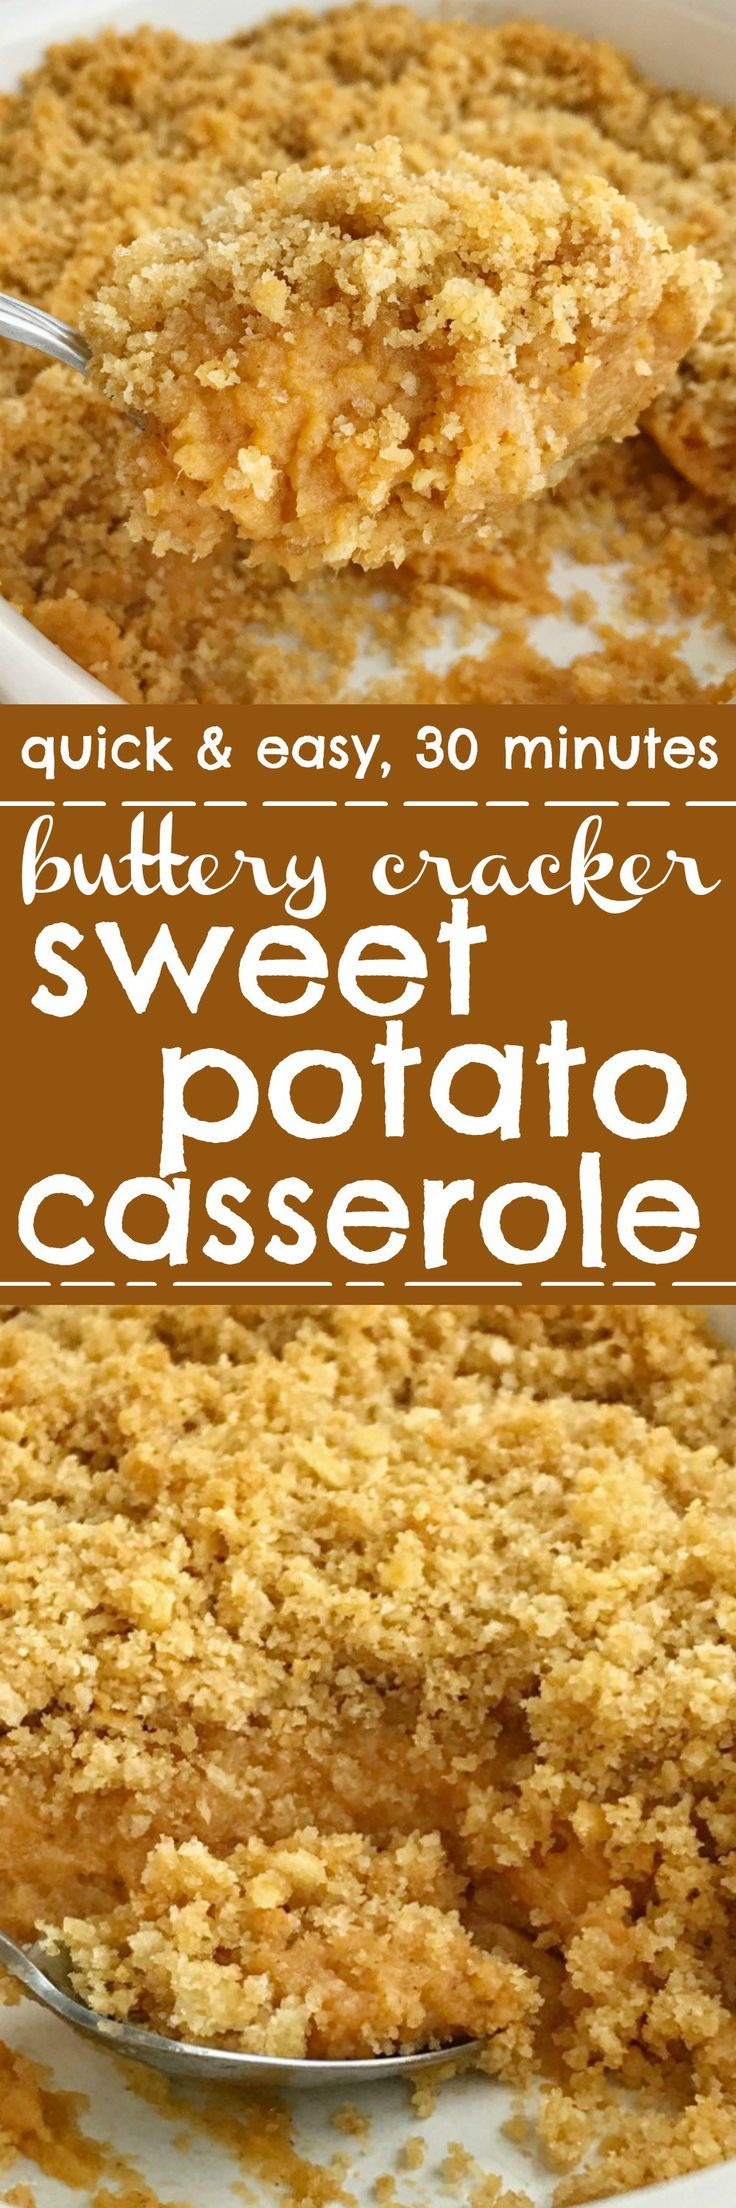 Buttery cracker sweet potato casserole can be on the dinner table in just 30 minutes! No boiling & peeling sweet potatoes. Sweet and creamy sweet potatoes topped with crunchy buttery cracker crumbs. This is such a fun twist to the classic casserole but so much easier. The perfect Thanksgiving side dish   www.togetherasfamily.com #sweetpotatocasserole #casserolerecipes #thanksgivingrecipes